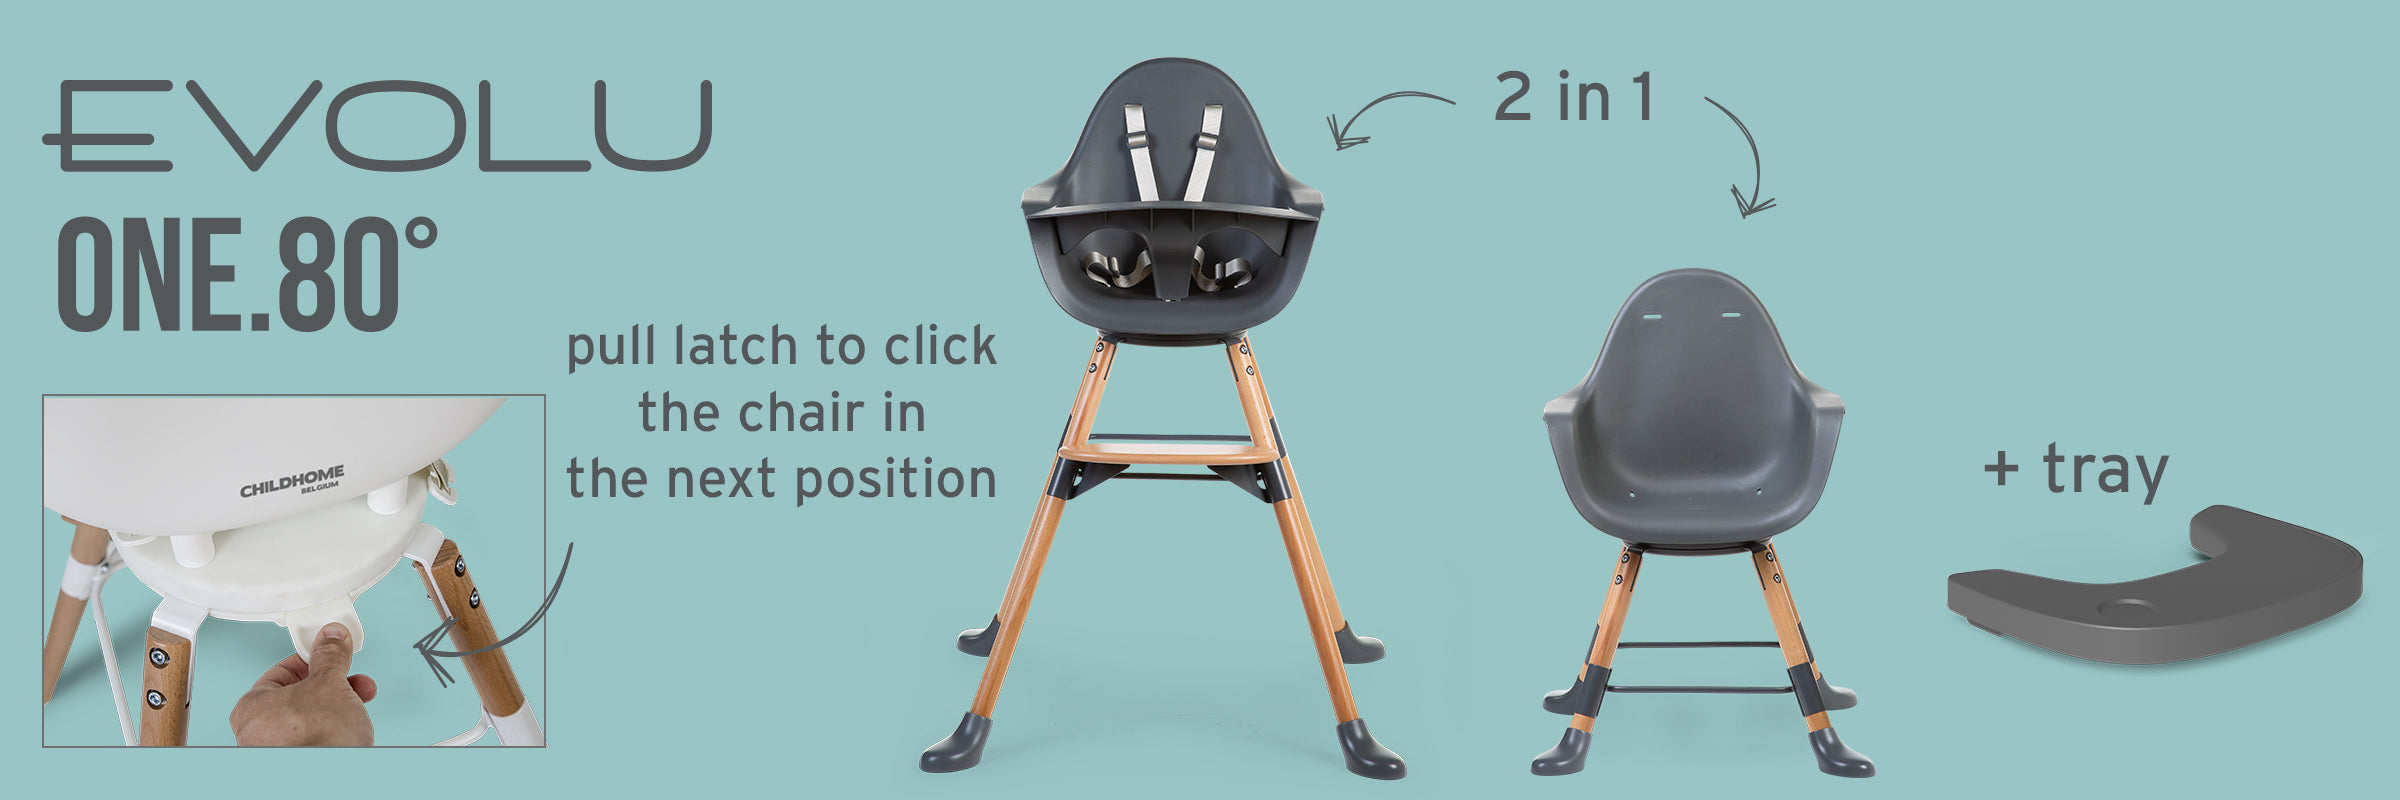 Evolu one.80° high chair